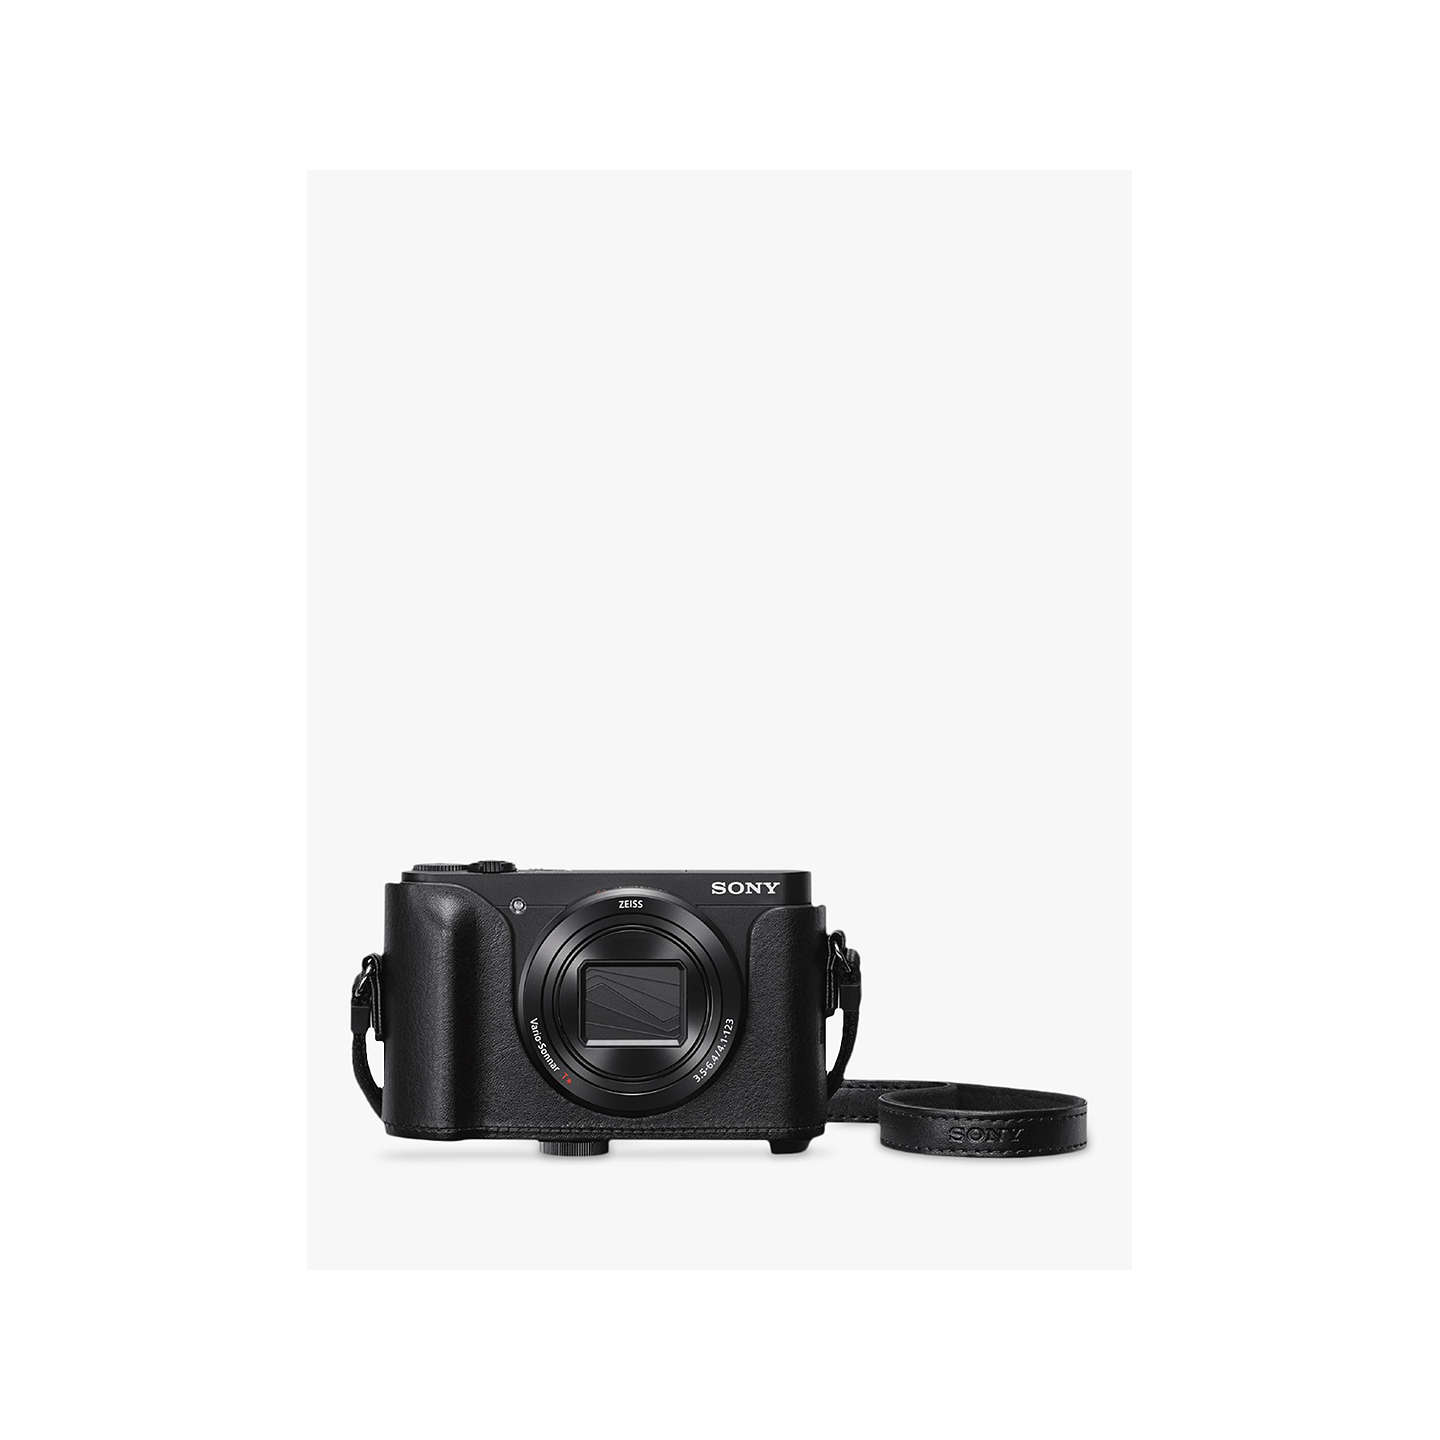 "BuySony Cyber-Shot WX500 Camera, HD 1080p, 18.2MP, 30x Optical Zoom, Wi-Fi, NFC, 3"" Vari Angle LCD Screen, Black, with Jacket Camera Case Online at johnlewis.com"